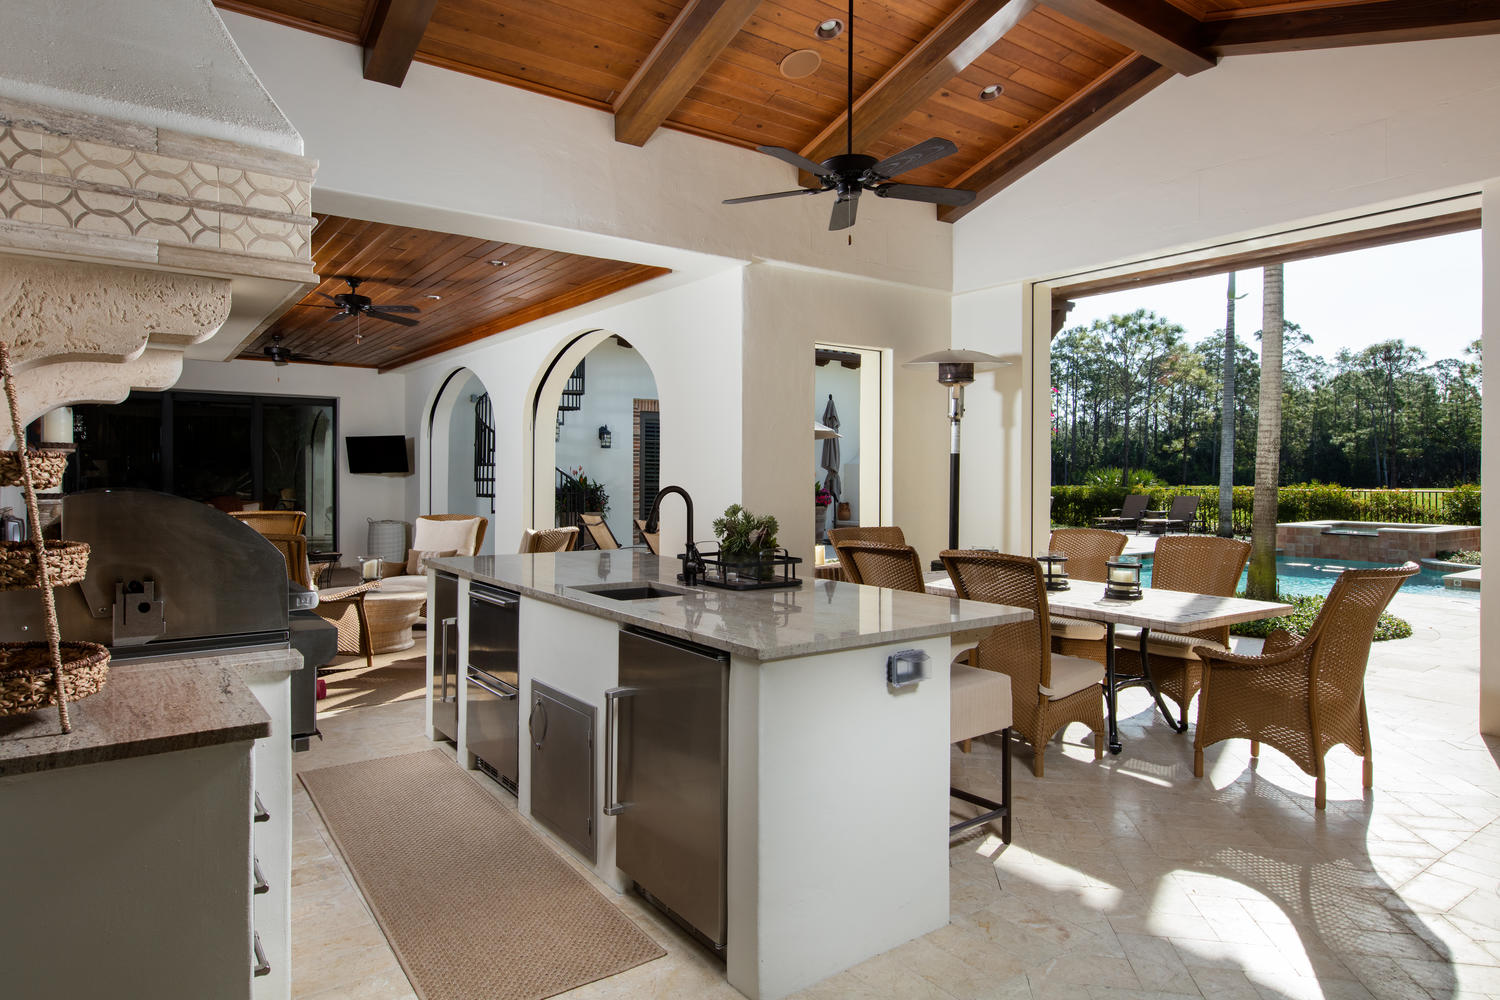 Luxury outdoor kitchens are on the list of must-haves for your outdoor living space.